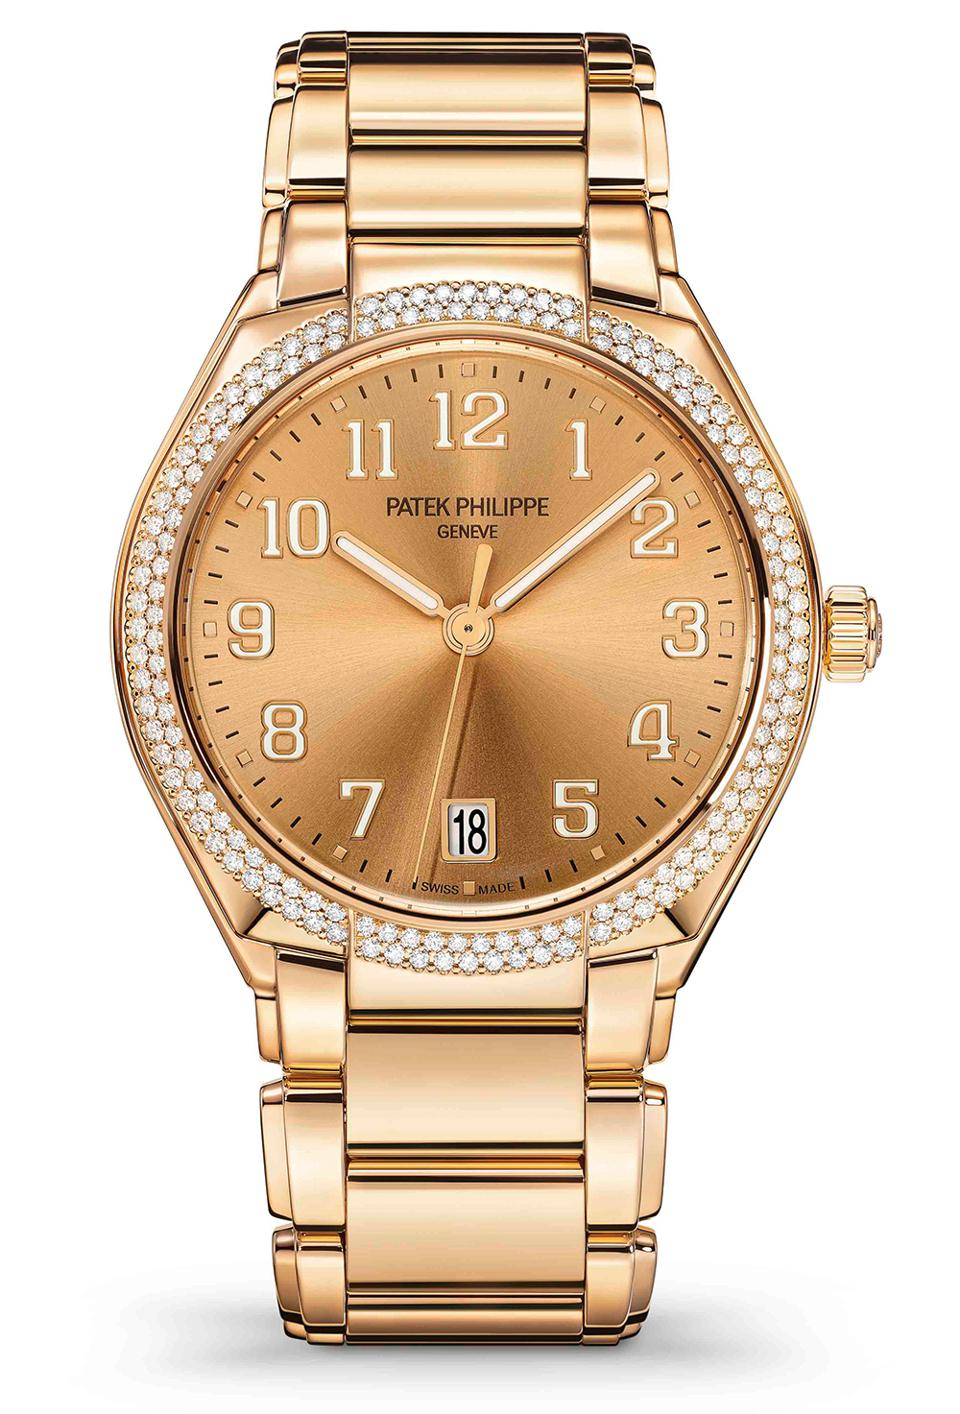 The Patek Philippe Twenty-4 Automatic in 18k rose gold with diamonds.